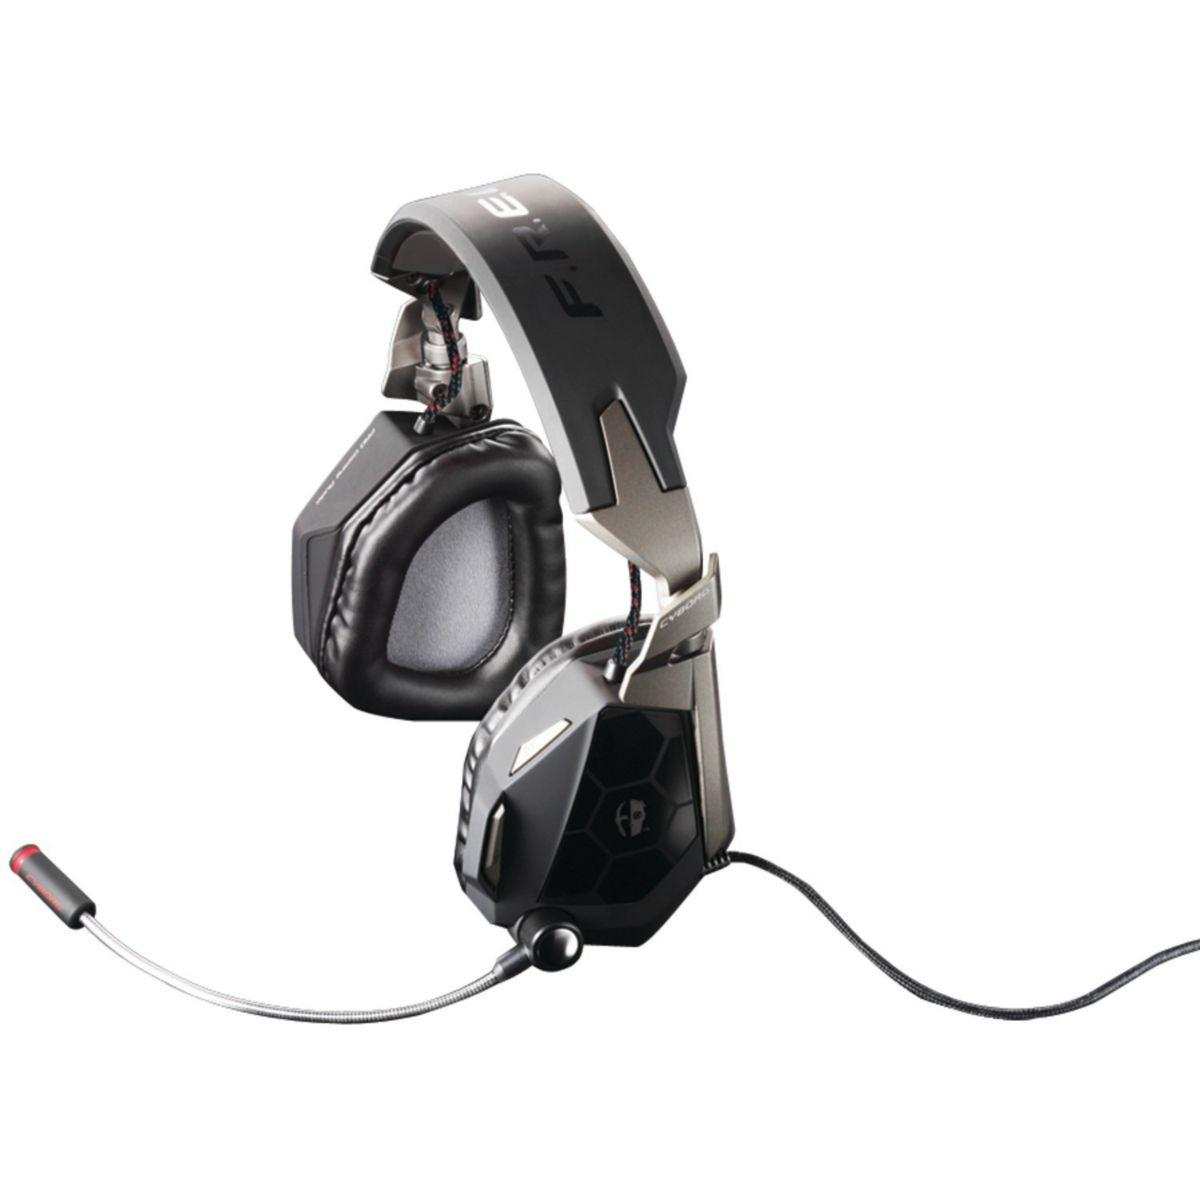 Casque micro gamer cyborg f.r.e.q 5 black pc/mac (photo)